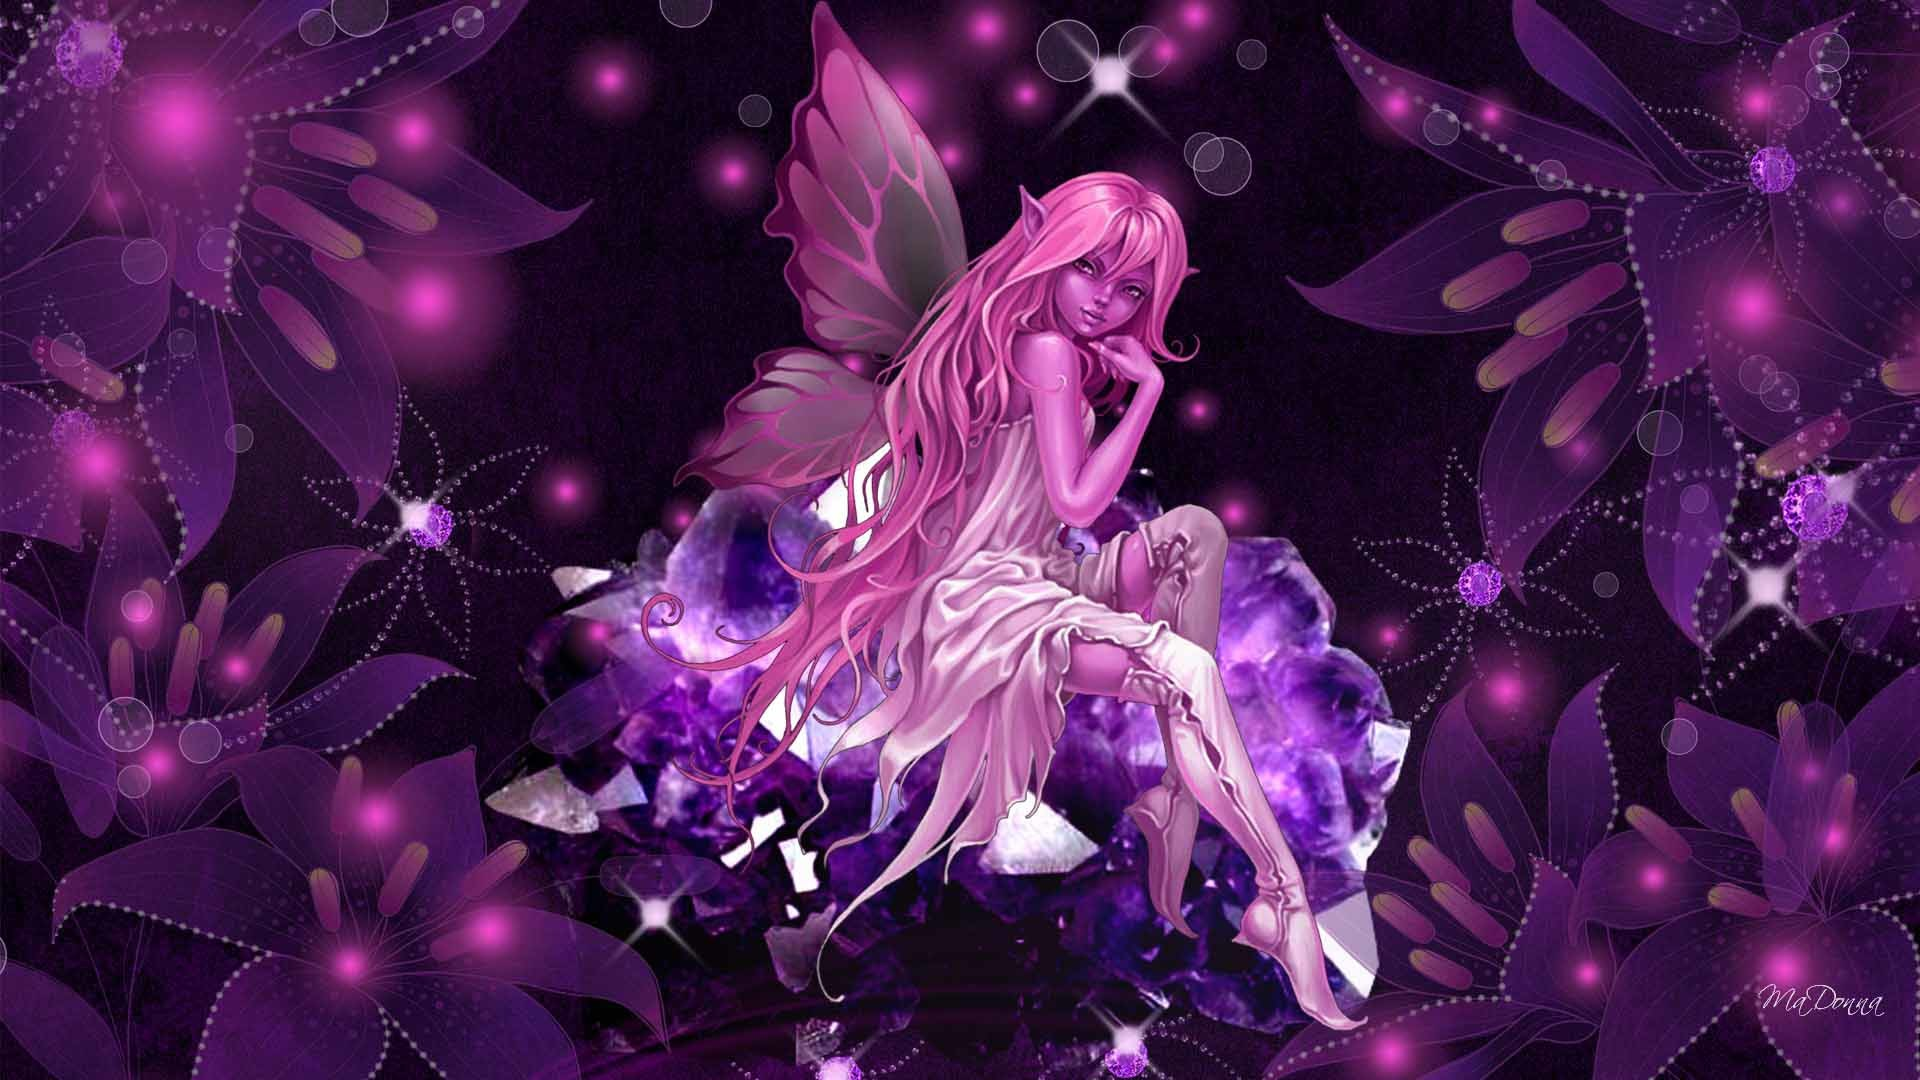 Res: 1920x1080, Amazing Fairy Backgrounds Best HD Widescreen Images